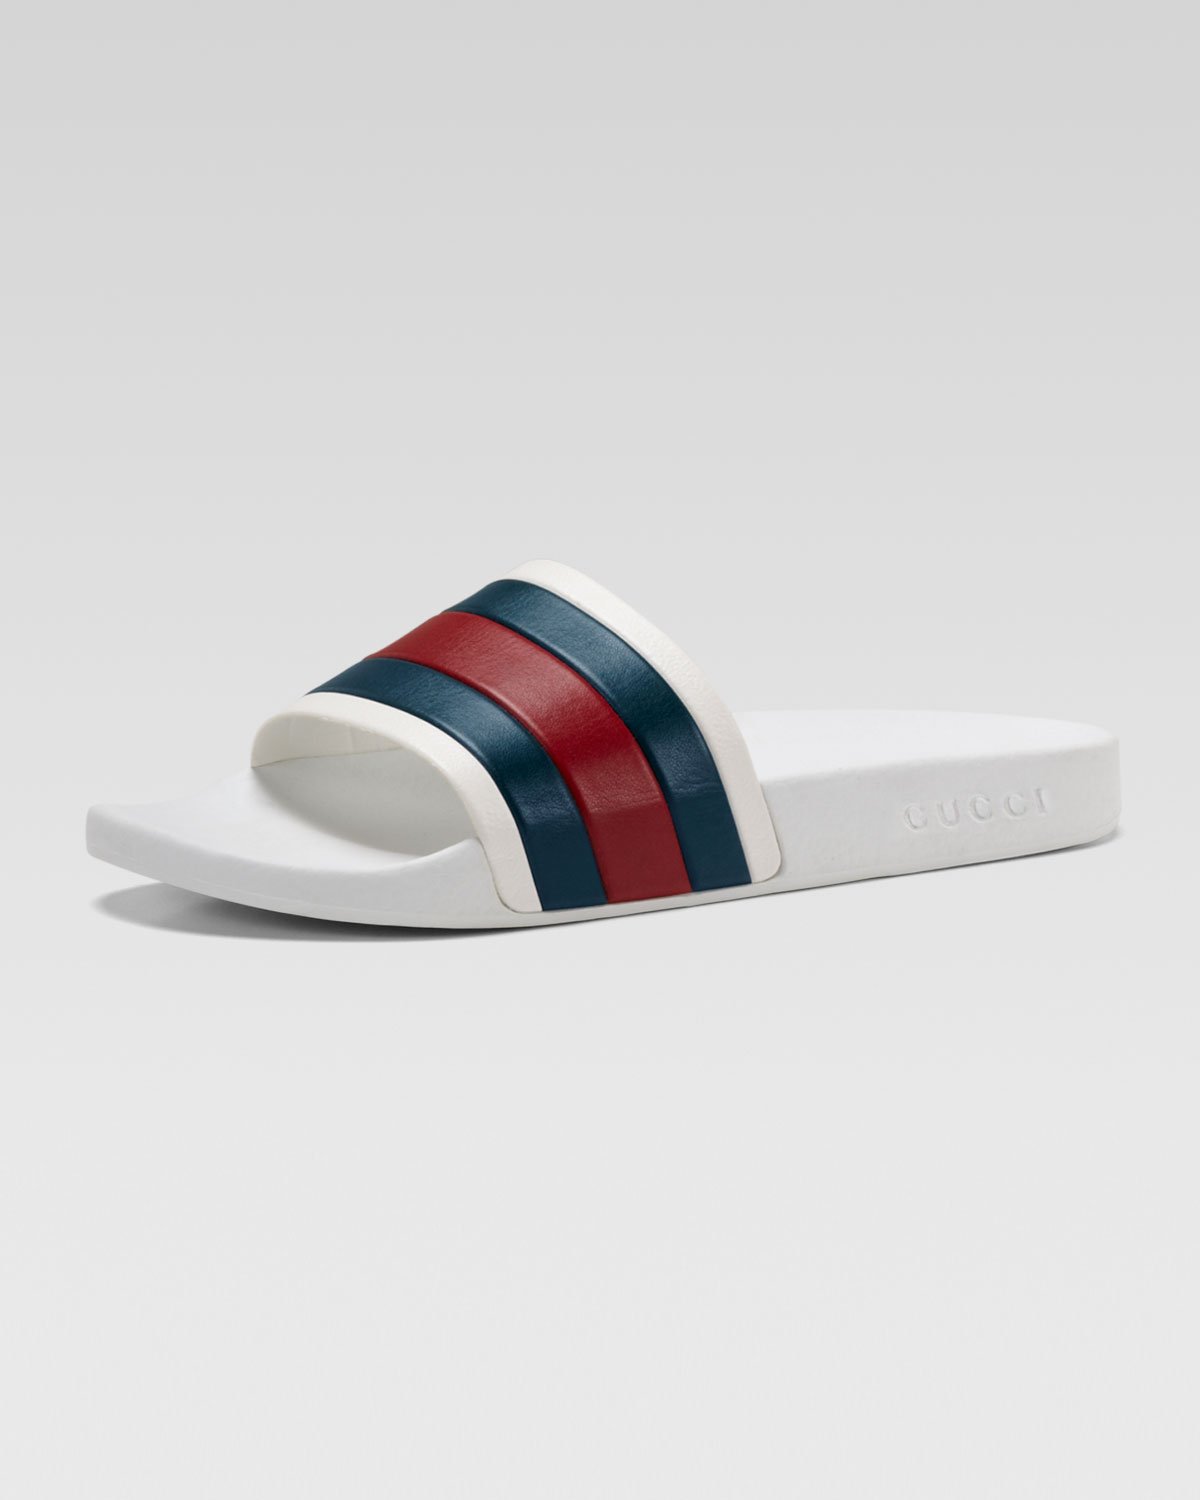 57ded5afbbc Lyst - Gucci White Rubber Slide Sandal in White for Men